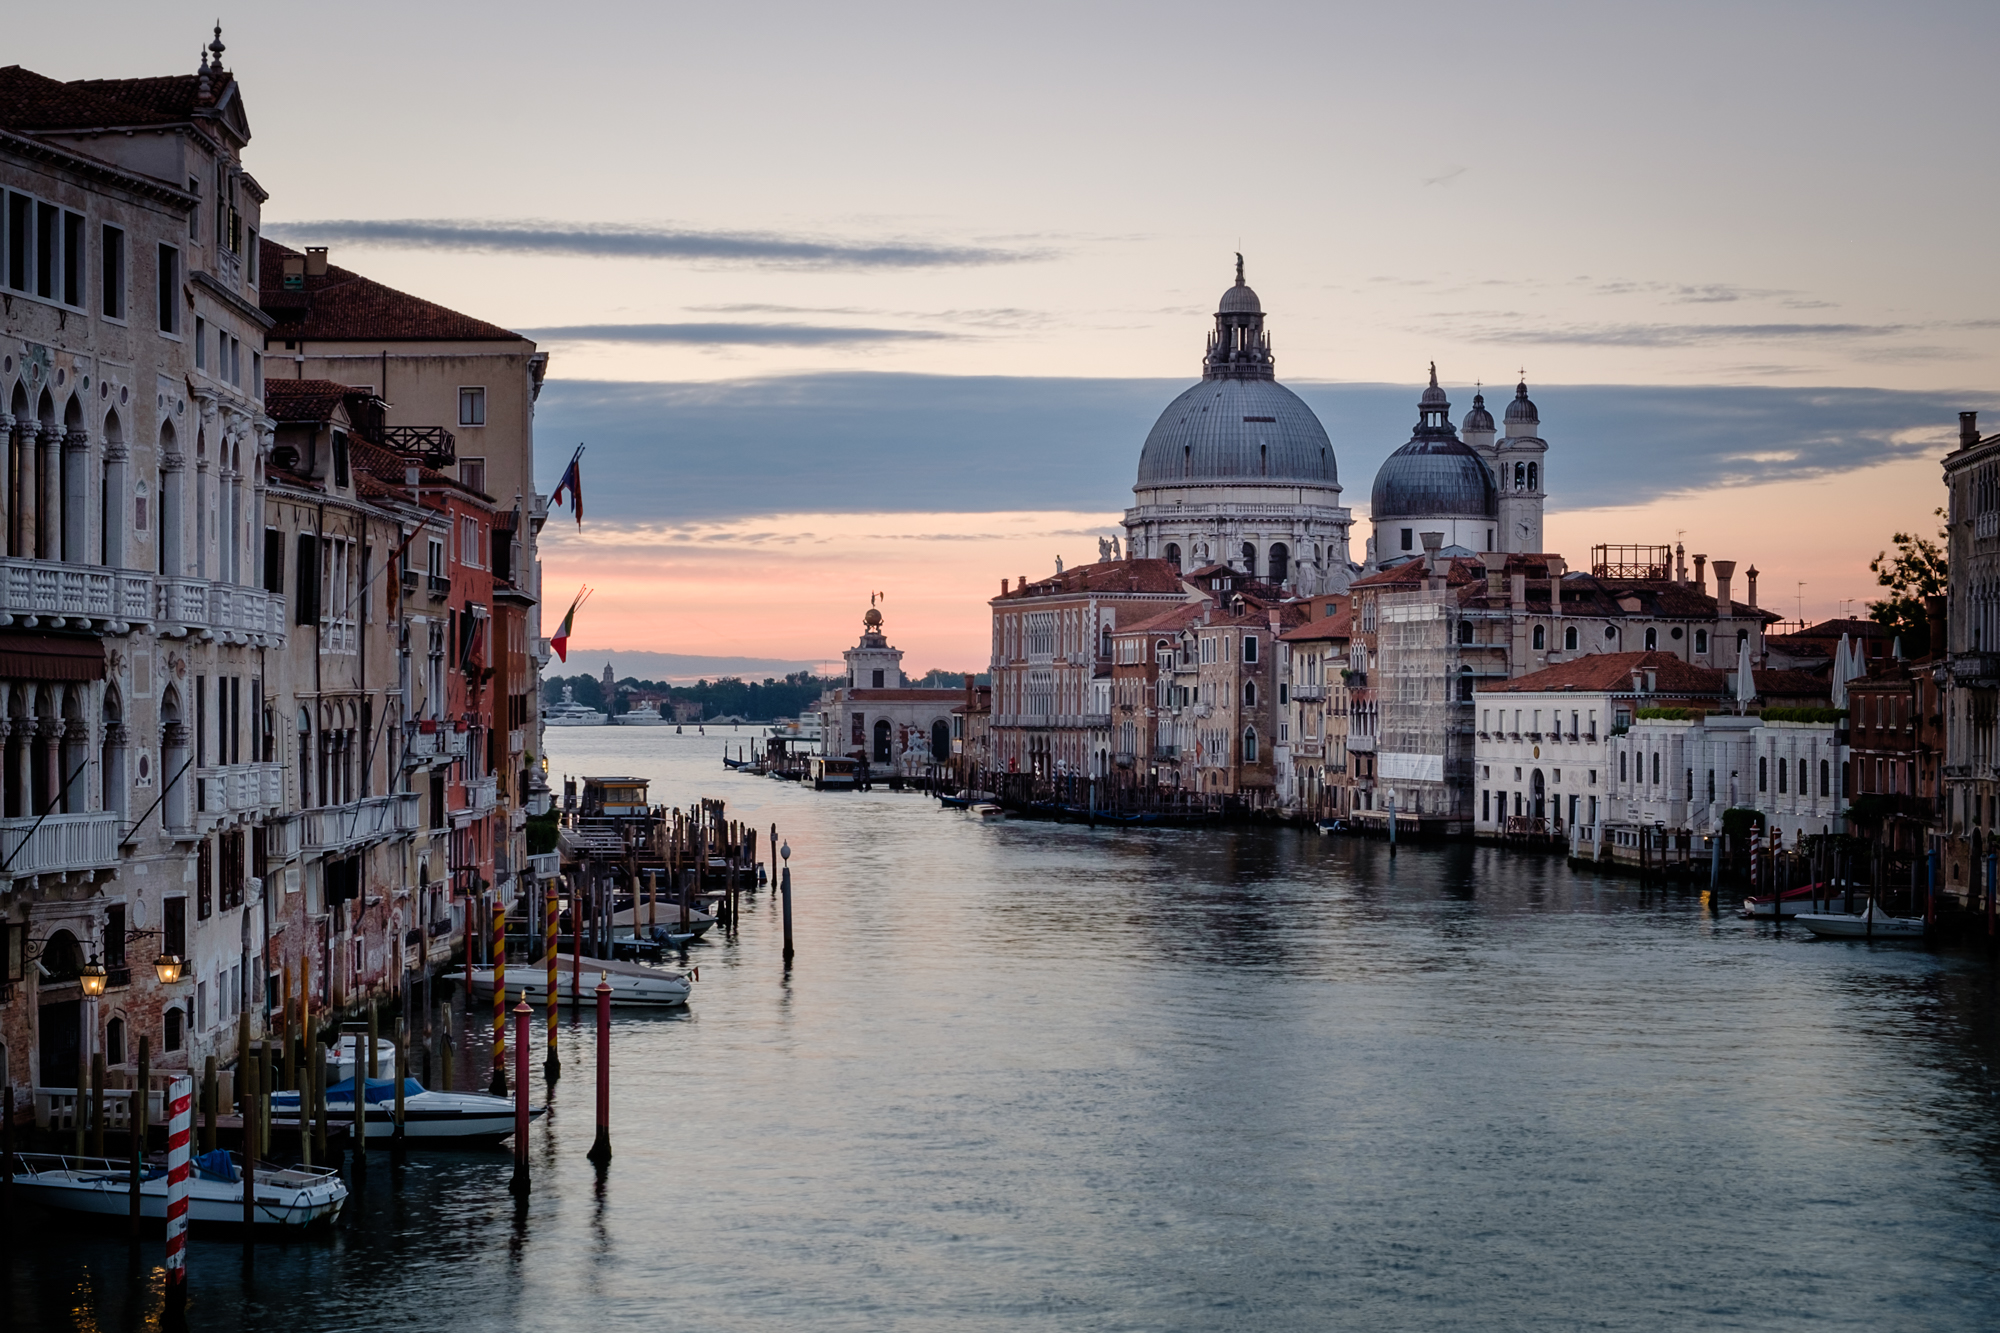 The Grand Canal at sunrise in Venice Taken by Trevor Sherwin